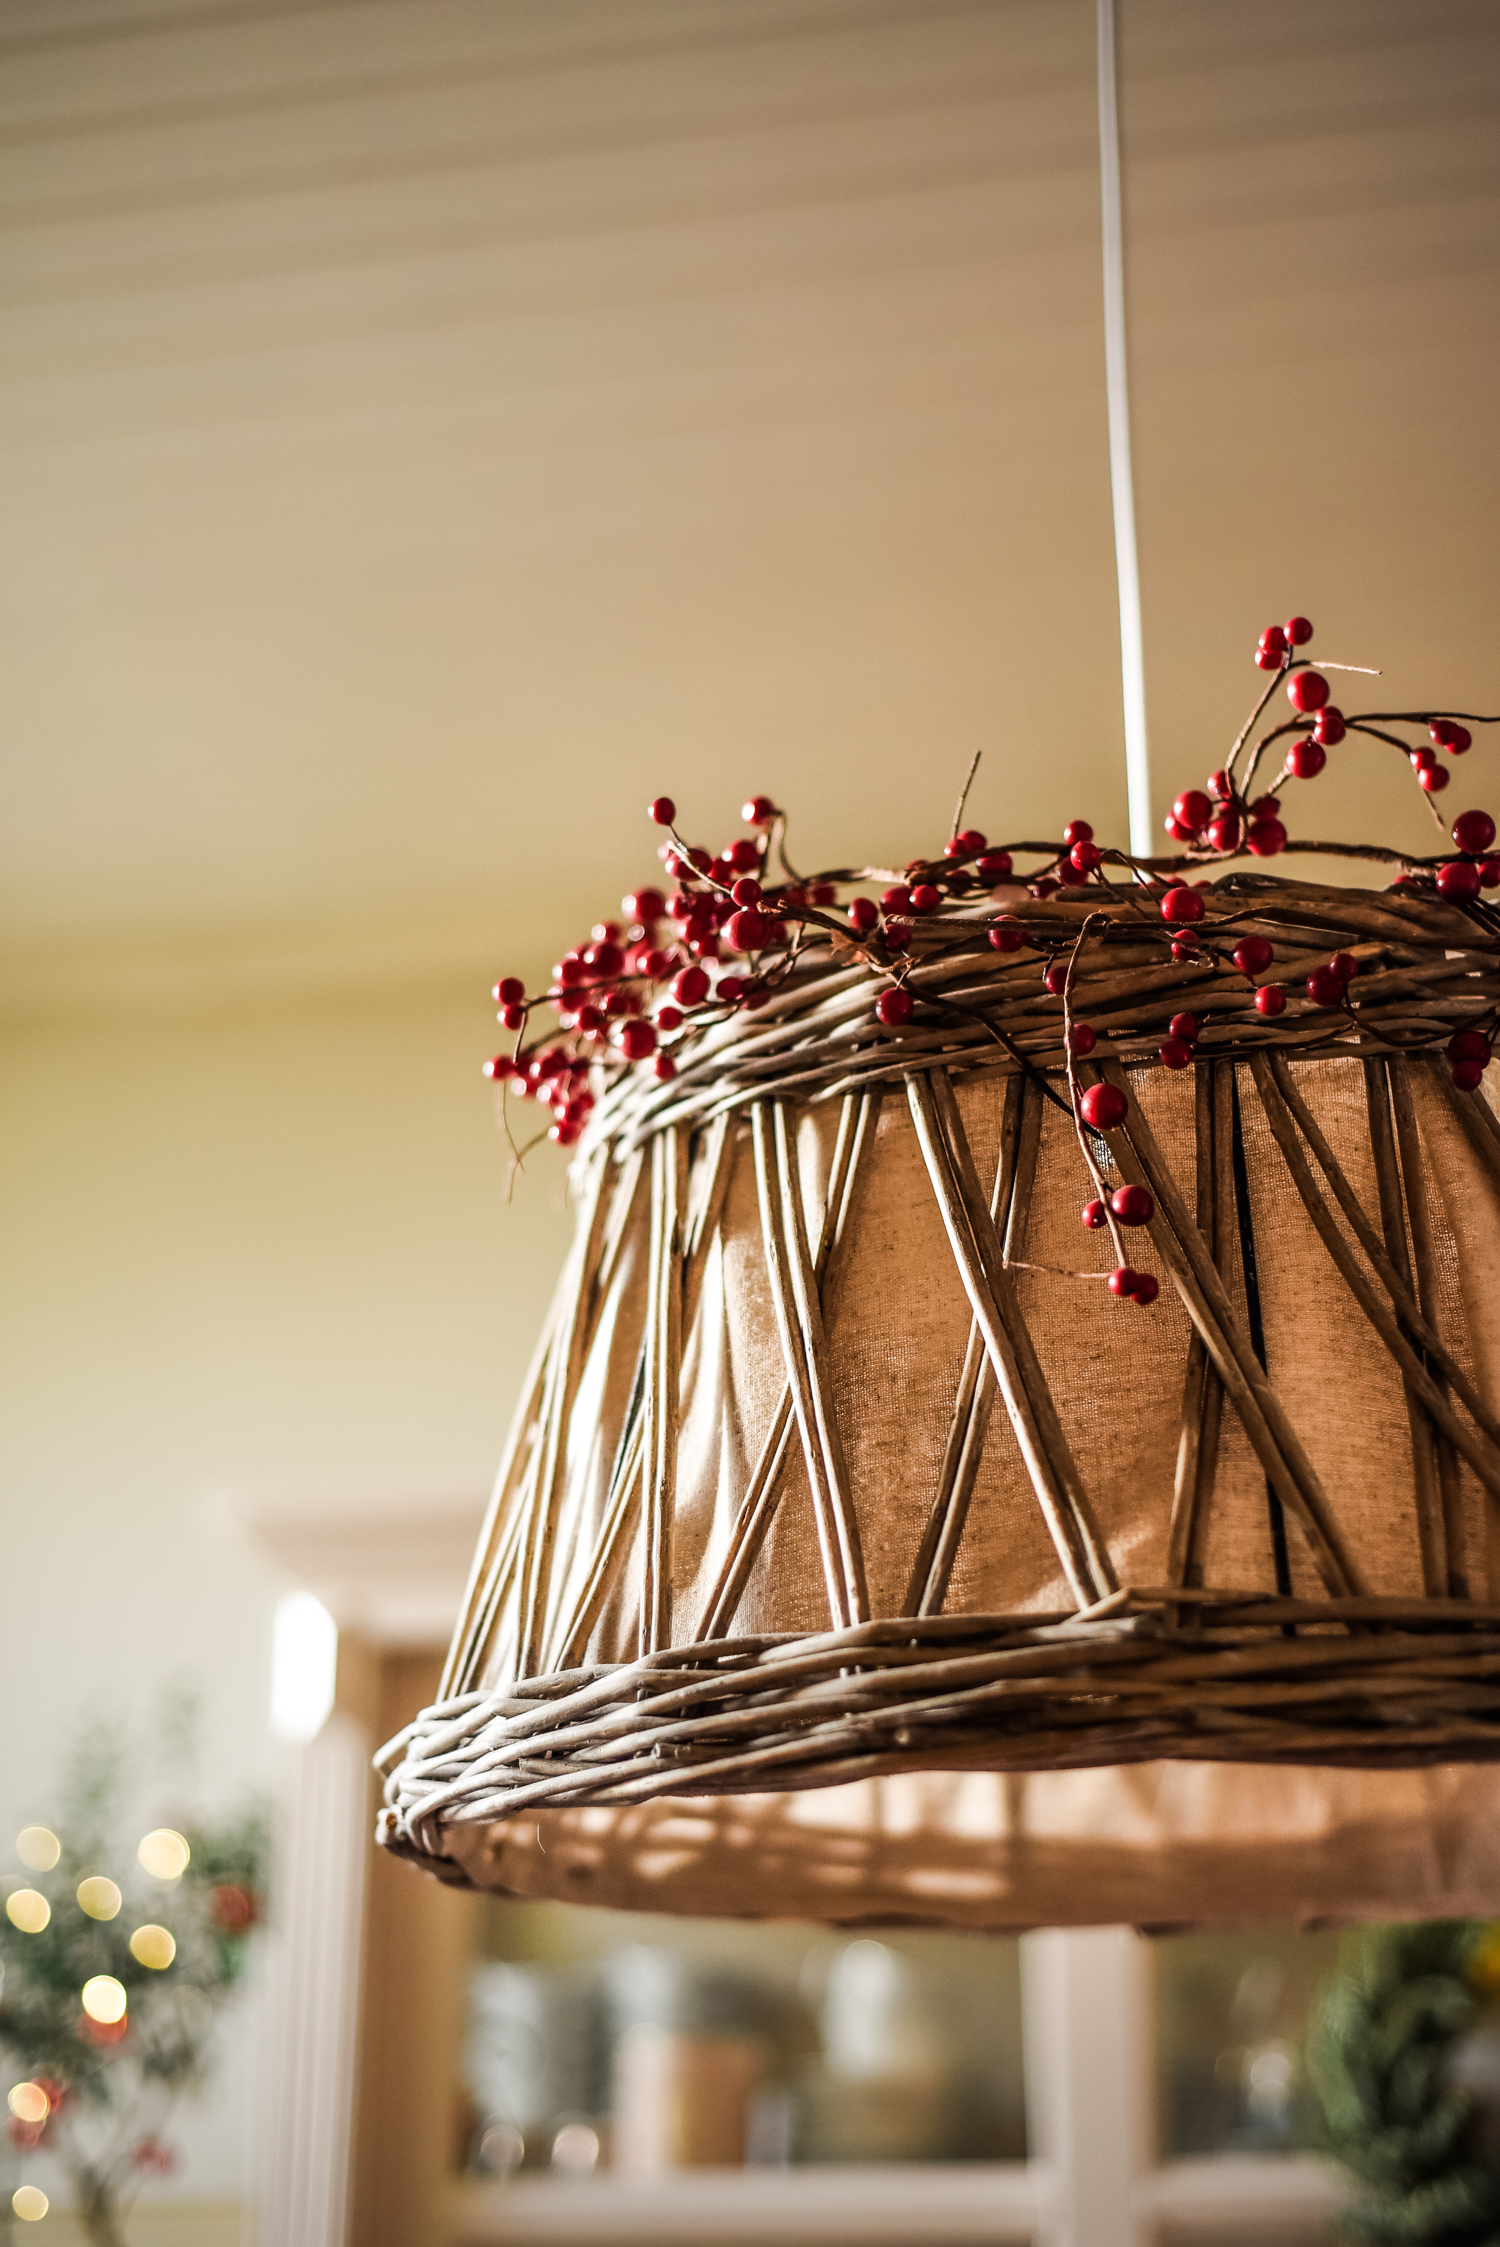 Traditional-Christmas-Decor-Tree-Table-Ideas-Style-To-Copy-AnaisStoelen-35.jpg